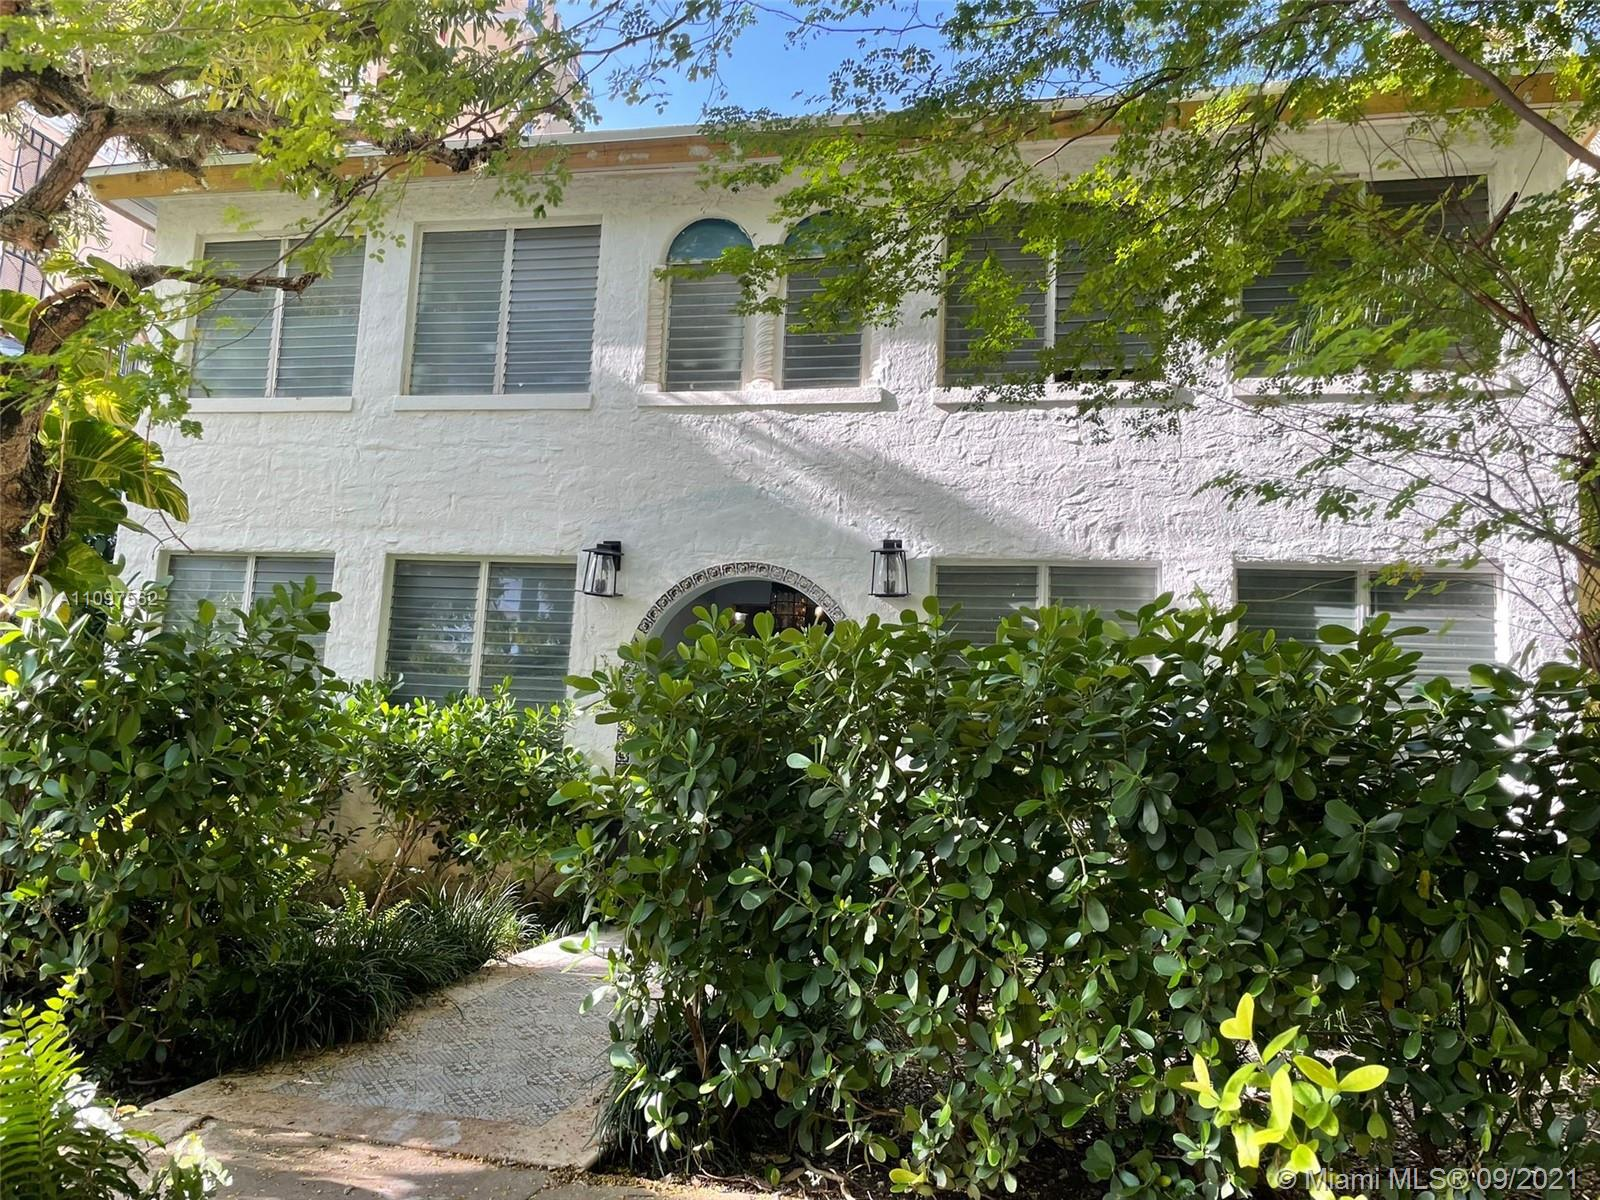 Beautiful apartment 1/1 located in 2ND floor, in the best area of Coral Gables on a tranquil street. Completely remodeled and ALL NEW. Impact windows. Restaurants, parks, A+ school, Publix supermarket close by. Excellent neighborhood. Also walking distance to the Metrorail Station. NO HOA!!!! The washer and dryer in the first floor.